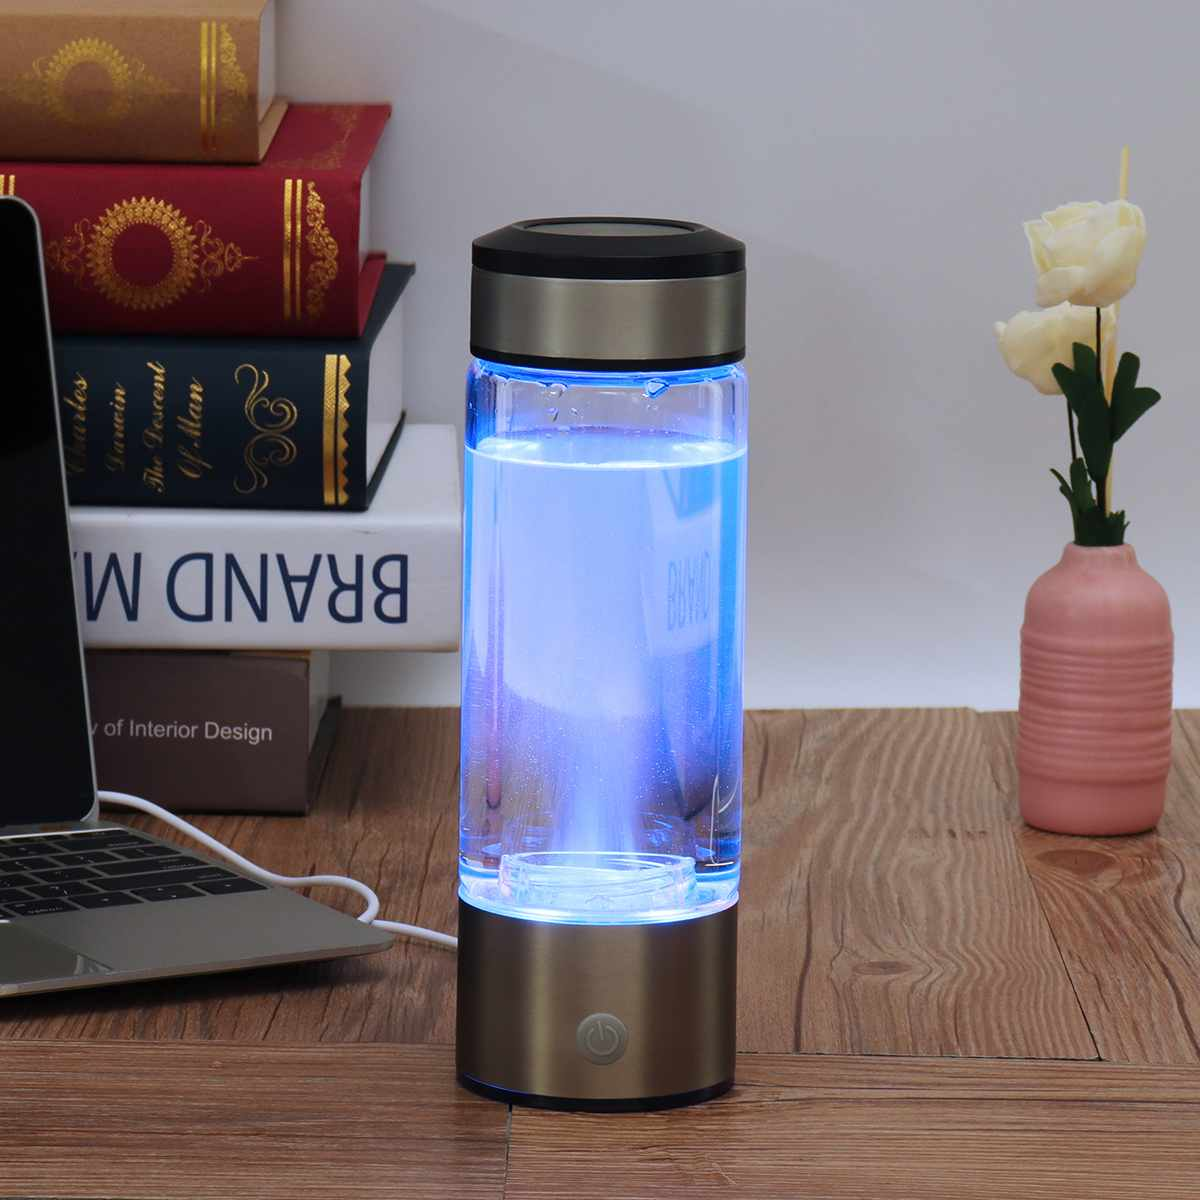 Portable Hydrogen-Rich Water Bottle Alkaline lonizer Hydrogen-Water Generator Maker Rechargeable Water Filter Ionizer Anti-Aging 4